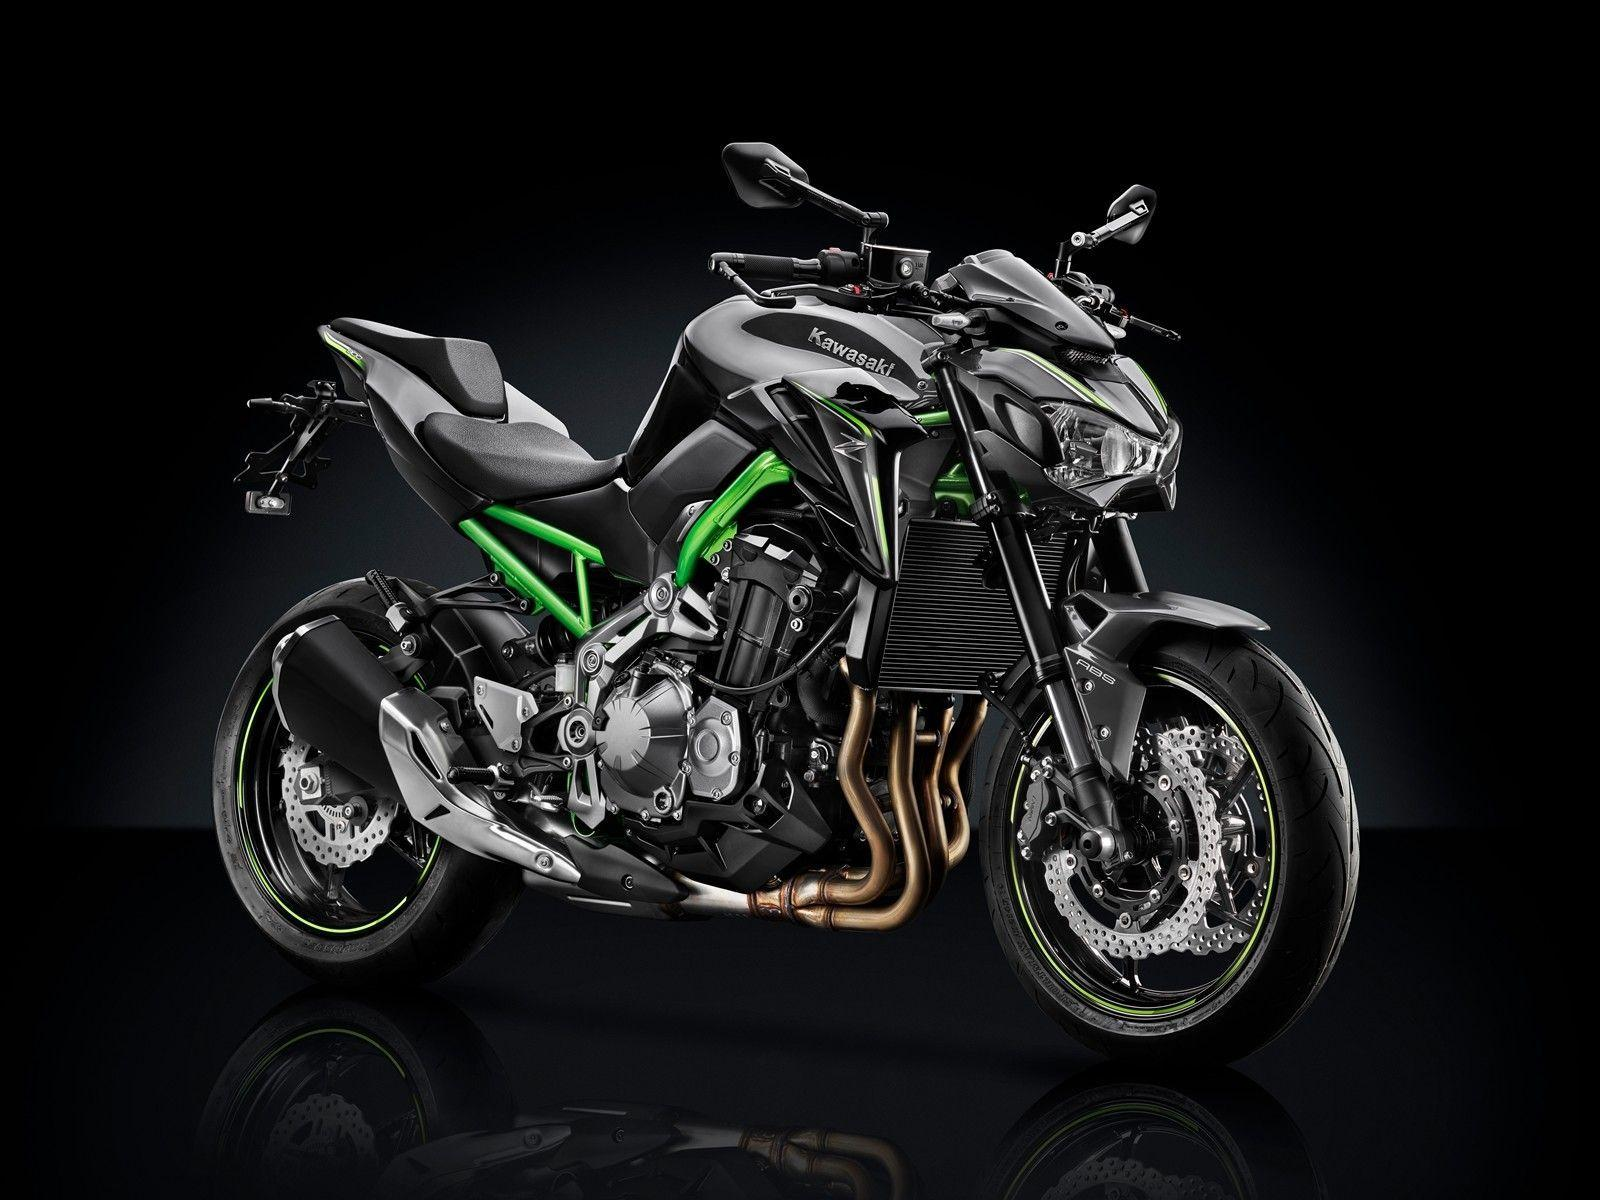 Z900 Wallpapers Wallpaper Cave